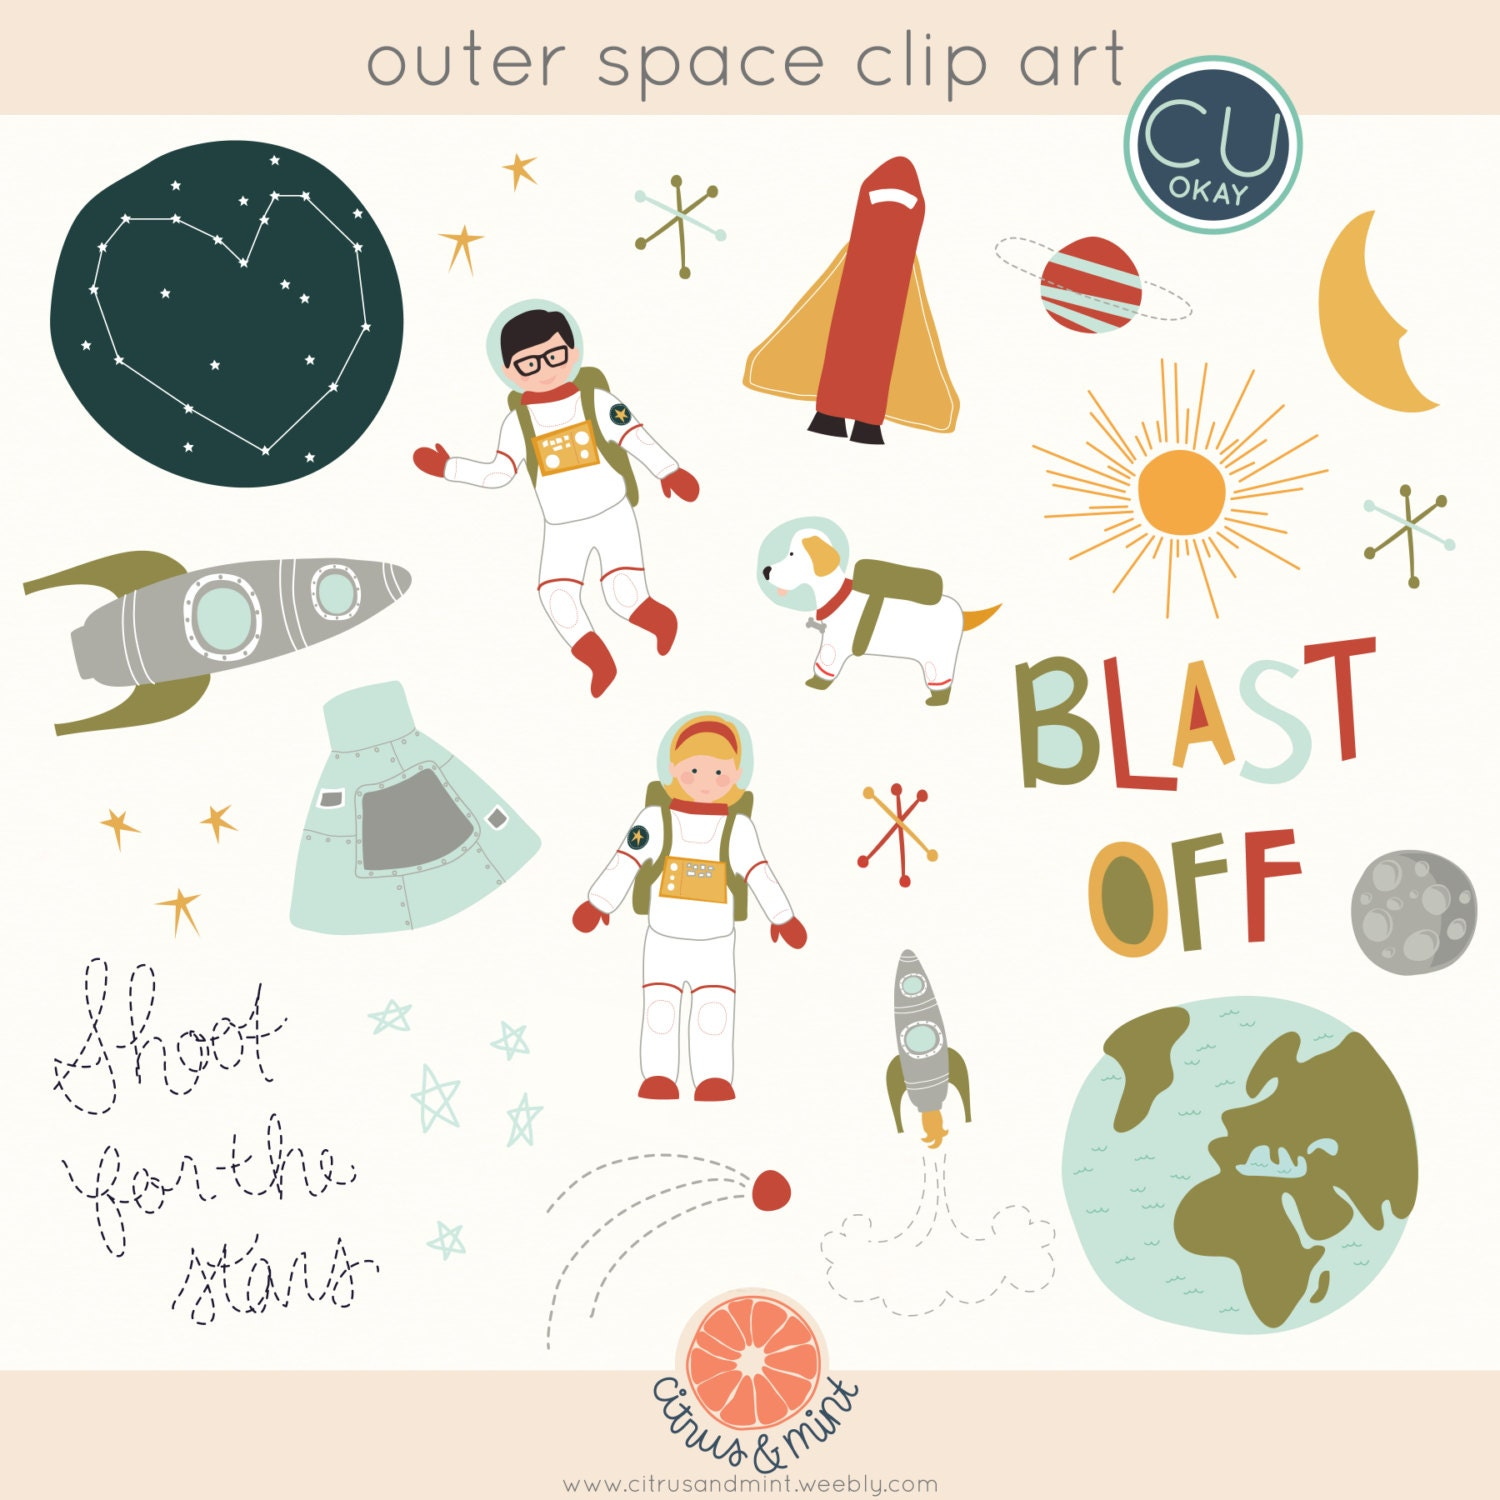 Outer space clip art graphics hand drawn digital for Outer space industrial design